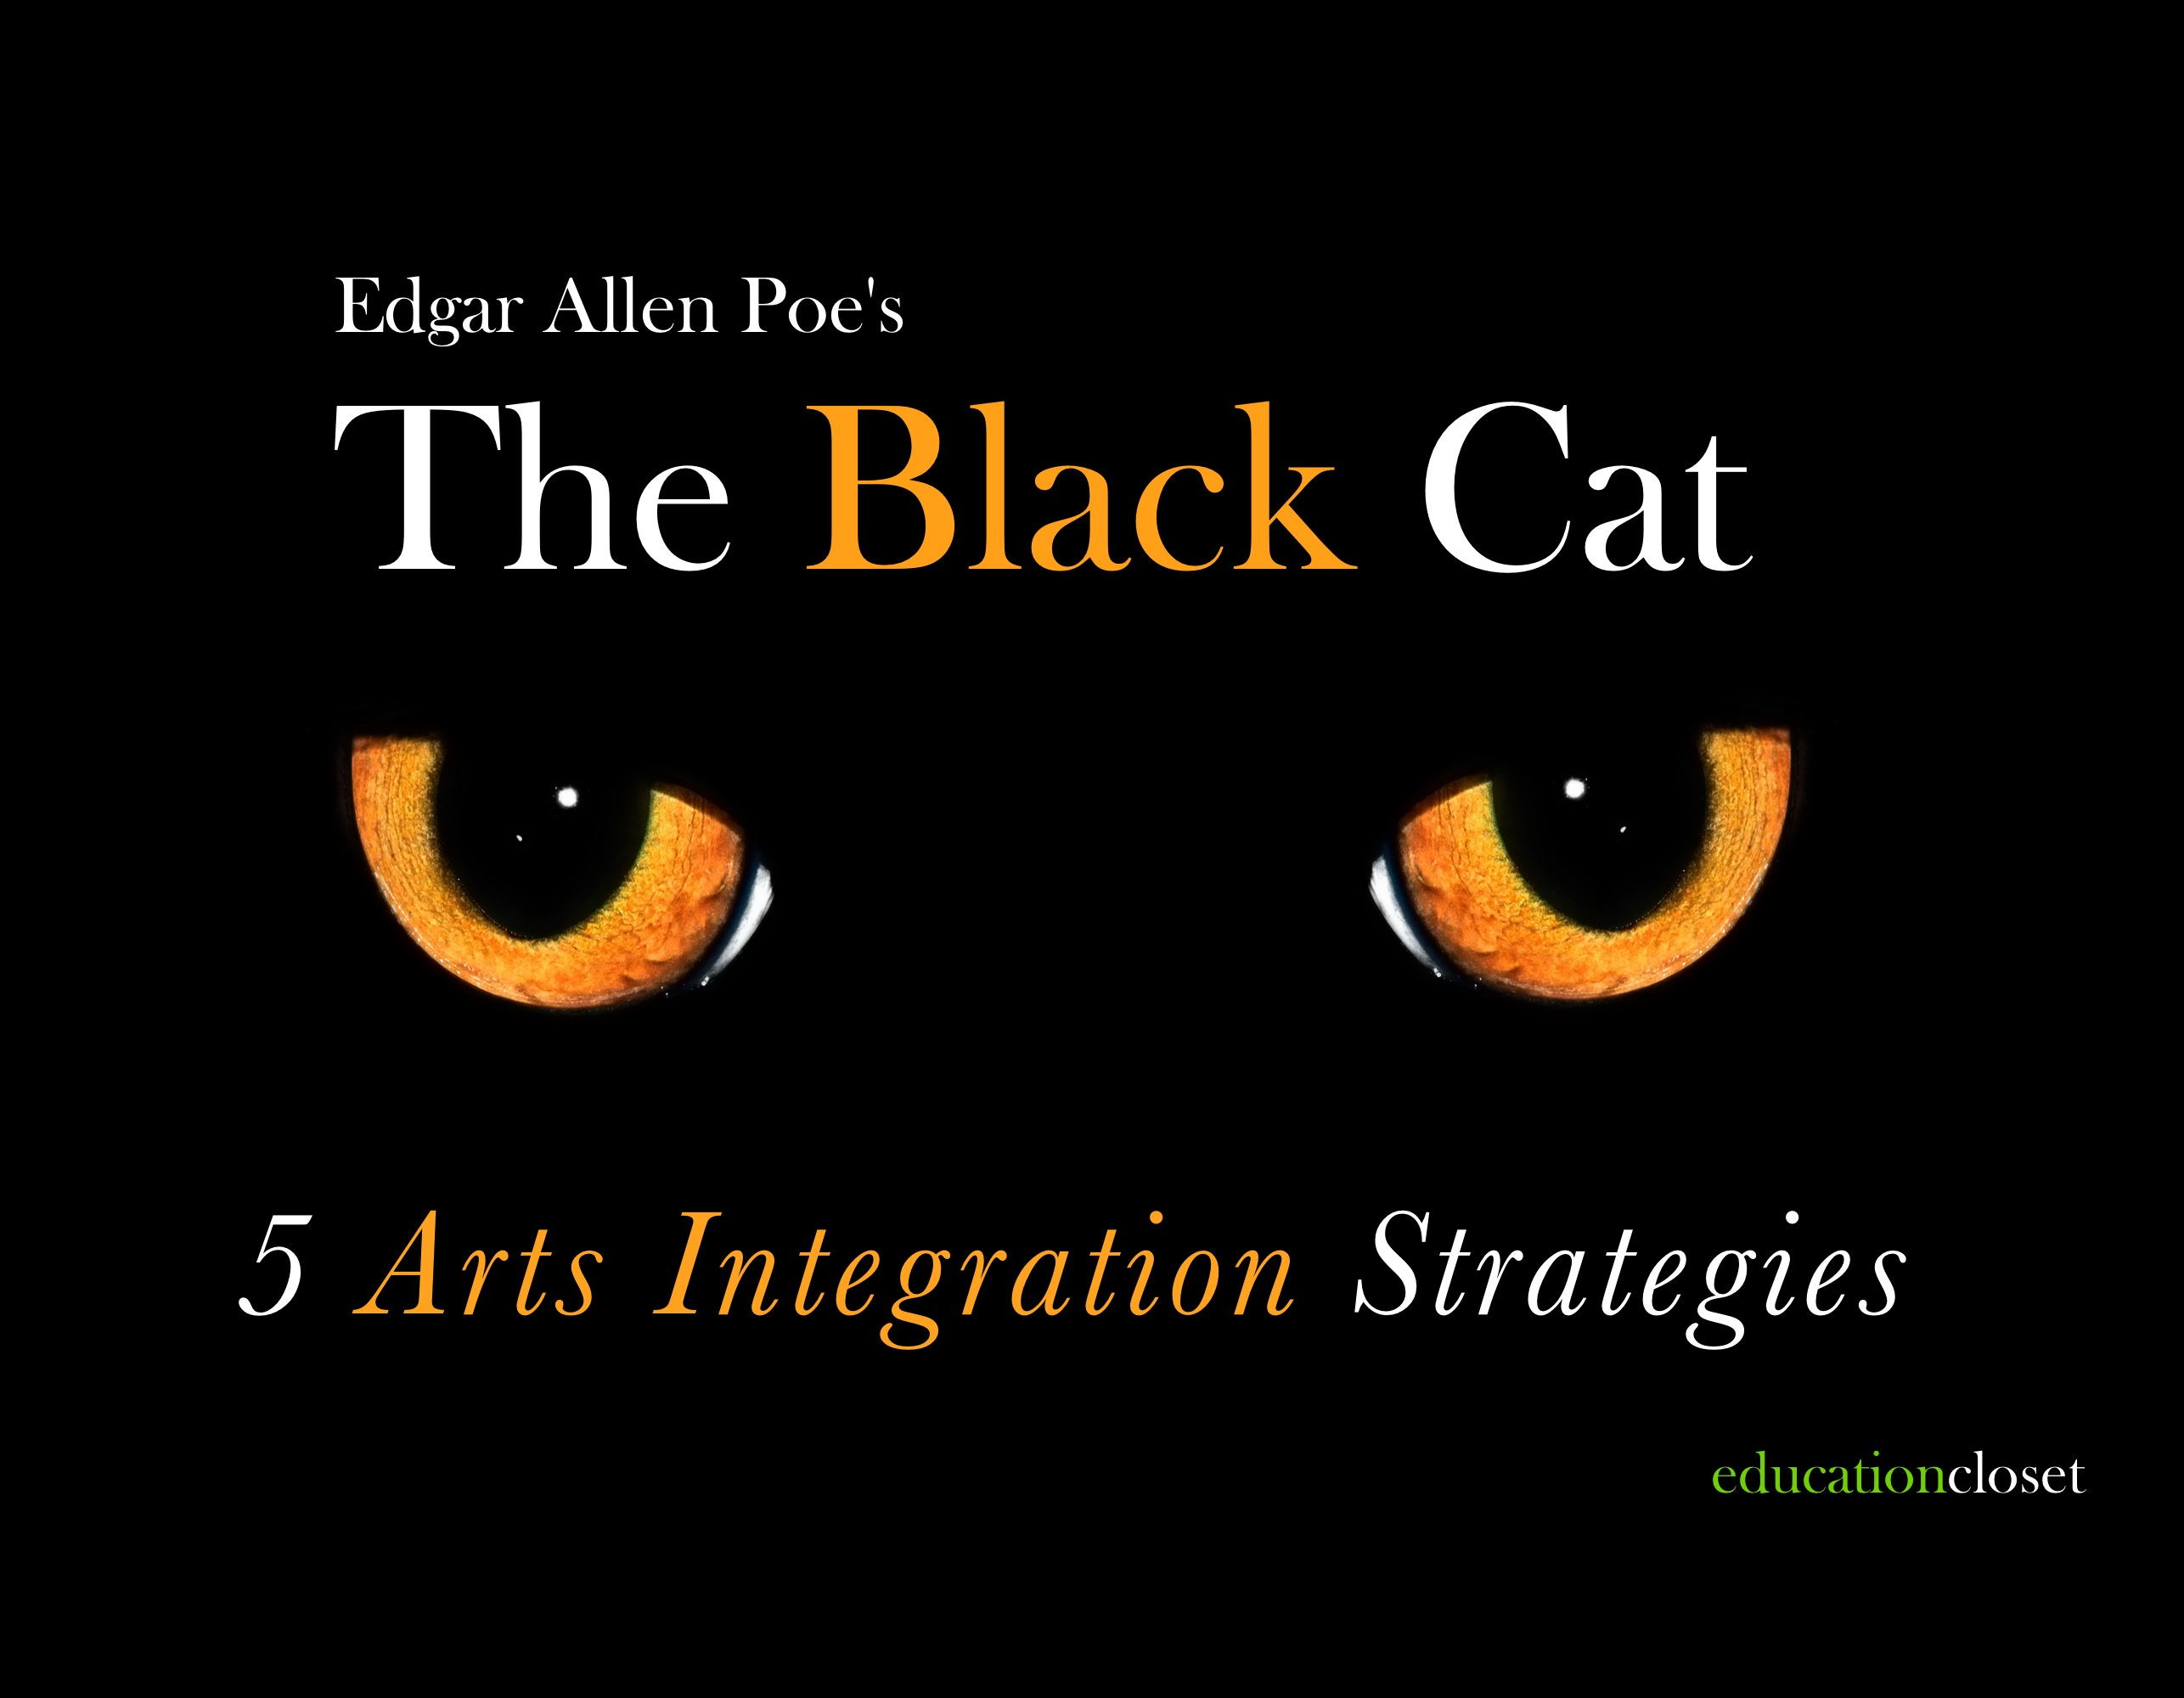 the black cat by edgar allen poe essay The black cat (edgar allen poe) to produce a well-written and well-argued essay that examines a single text for its literary elements once this has been accomplished, one may then tie the explication to a theme related to literature: how lines are constructed, the drift and tenor of metaphors and symbols, rhythm,.